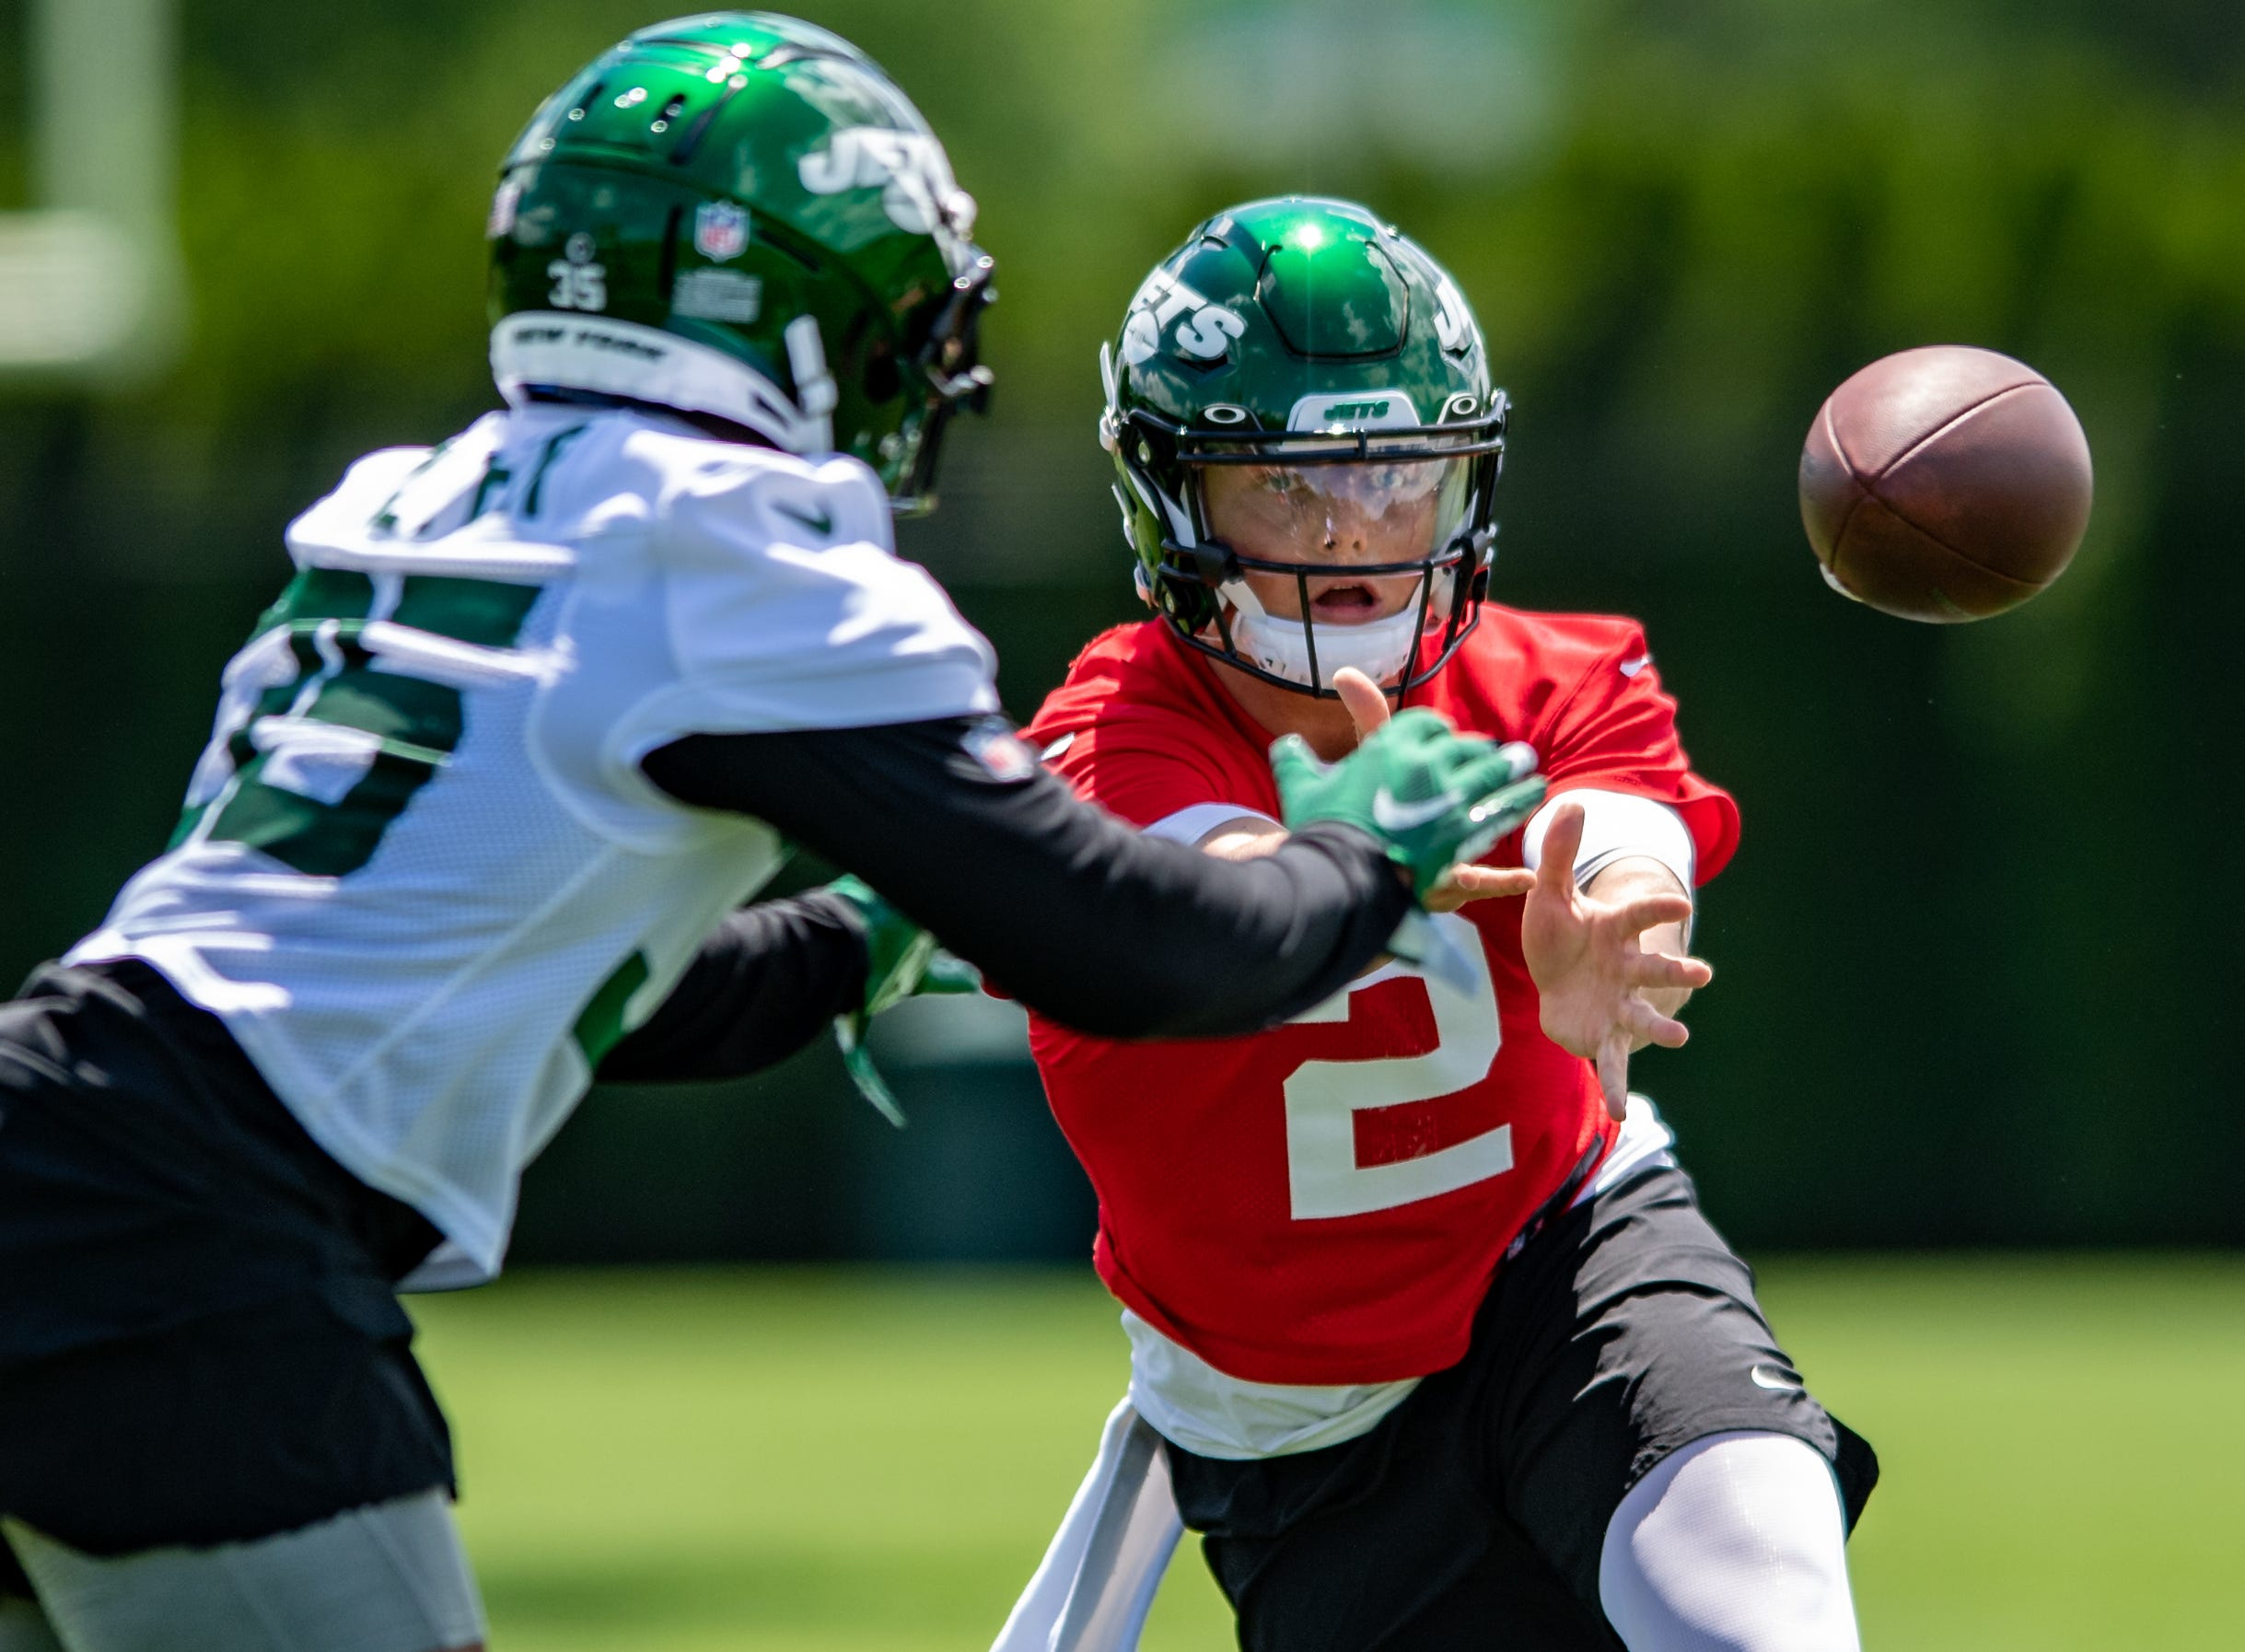 Rookie QB Zach Wilson (2) and Jets have a large hill to climb in 2021.